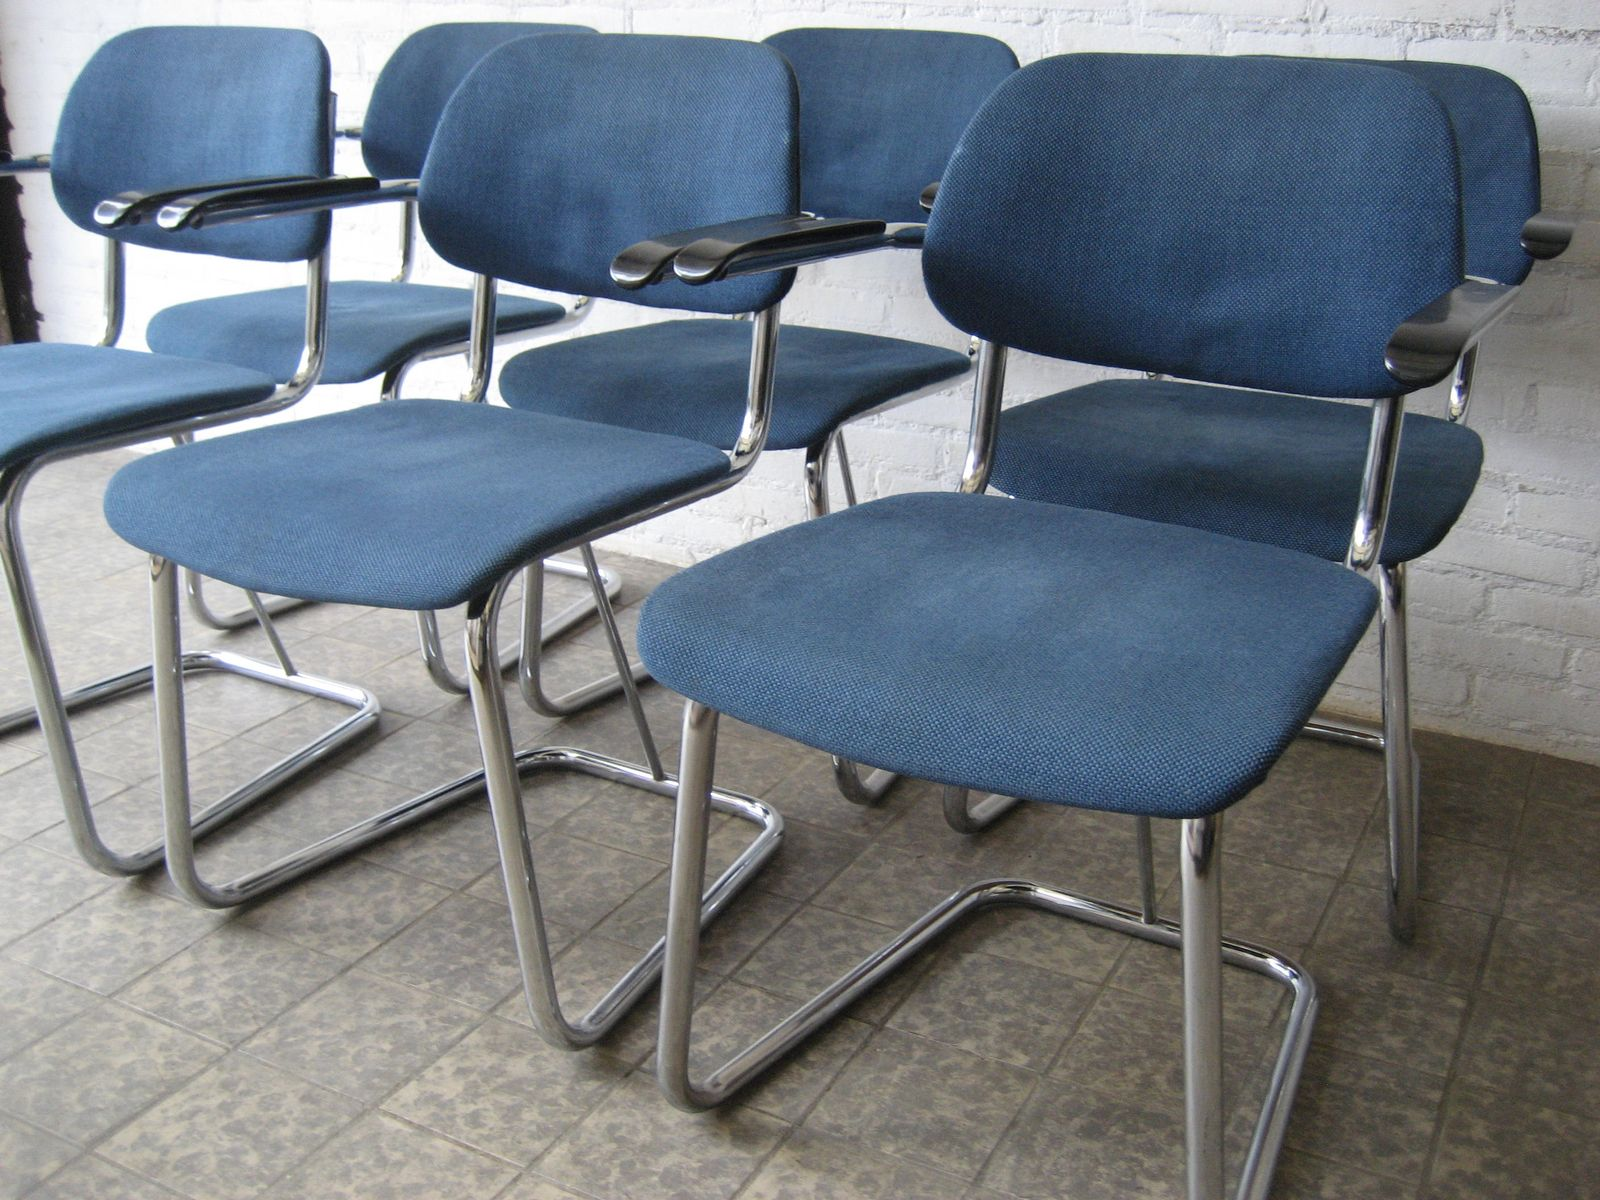 6 vintage tube chairs upholstered in blue fabricï ¿ for sale at Pamono